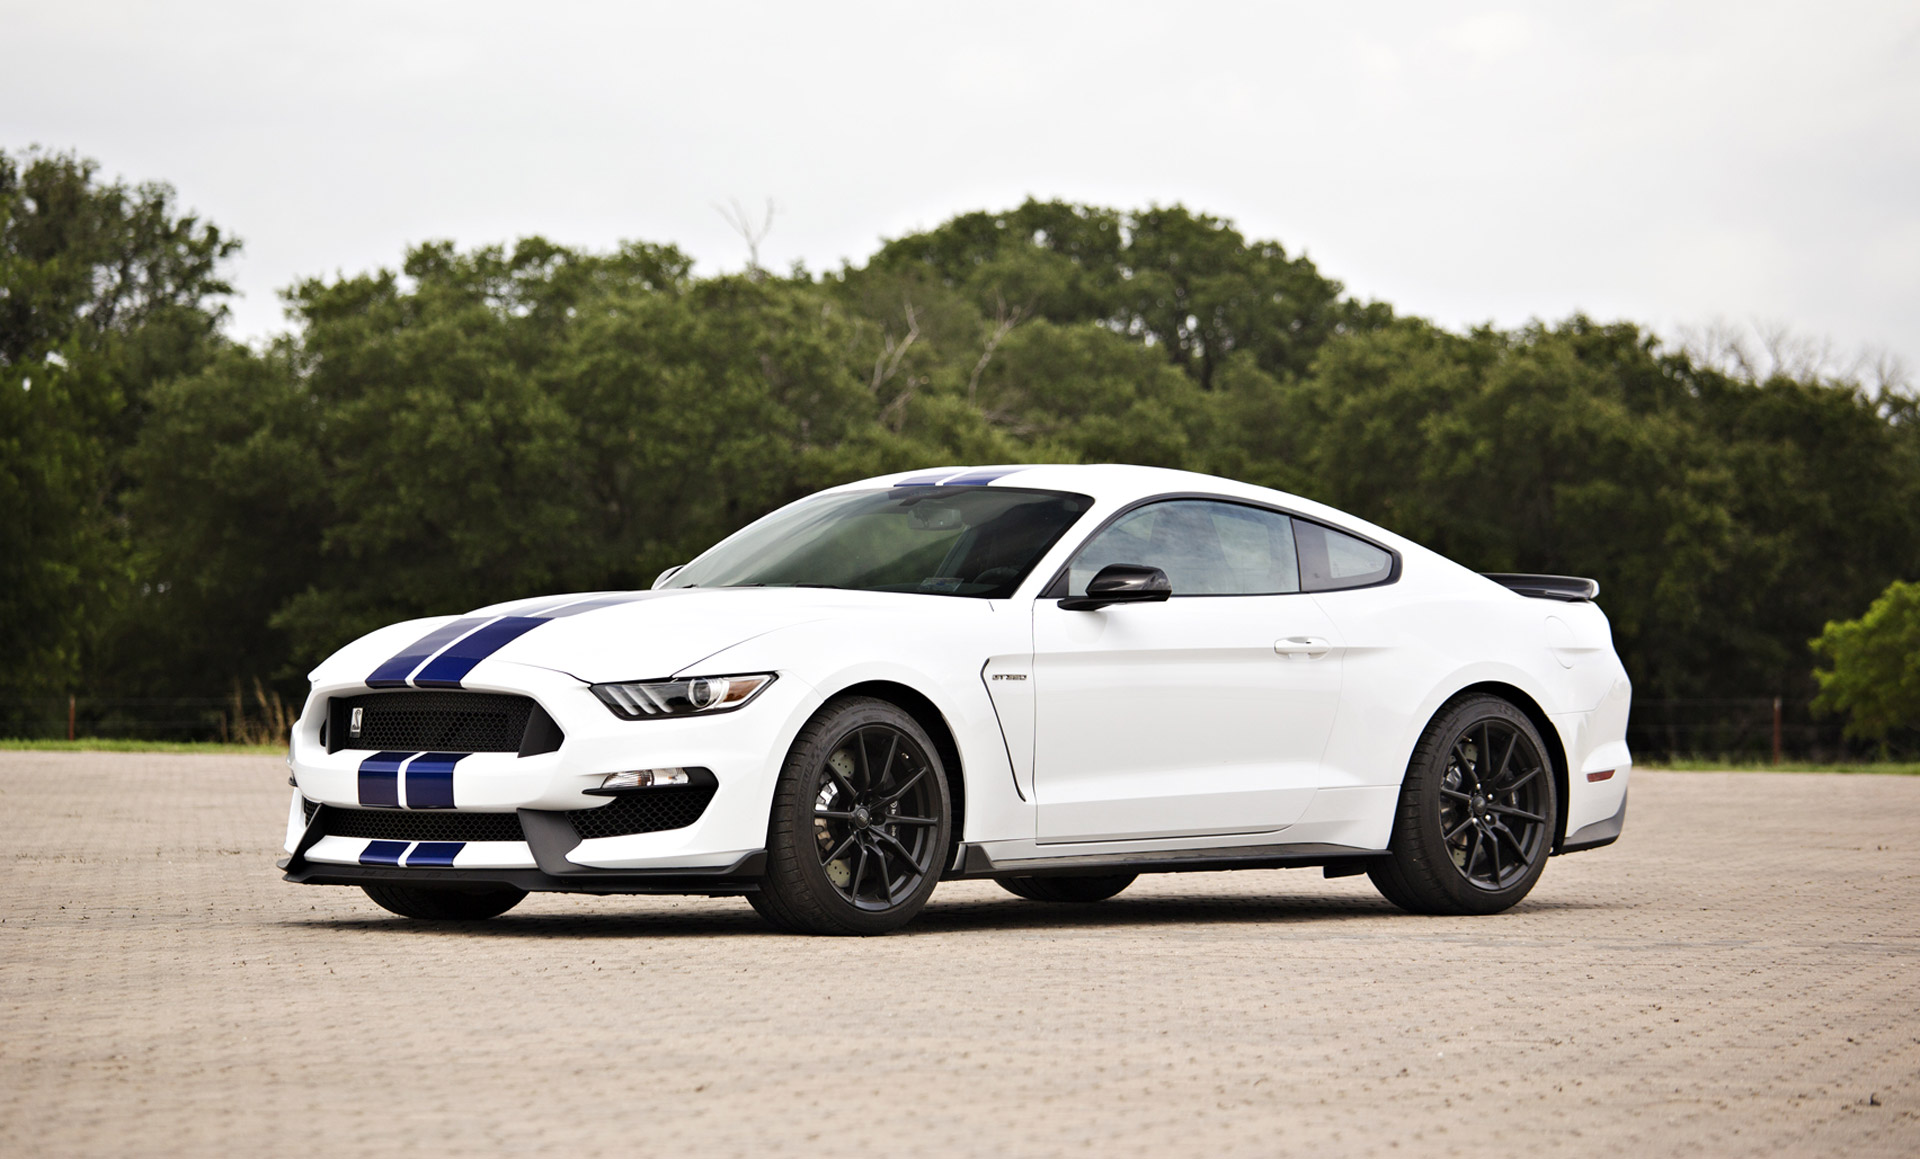 Ford mustang shelby gt350 signed by george w bush helps raise 885k for charity